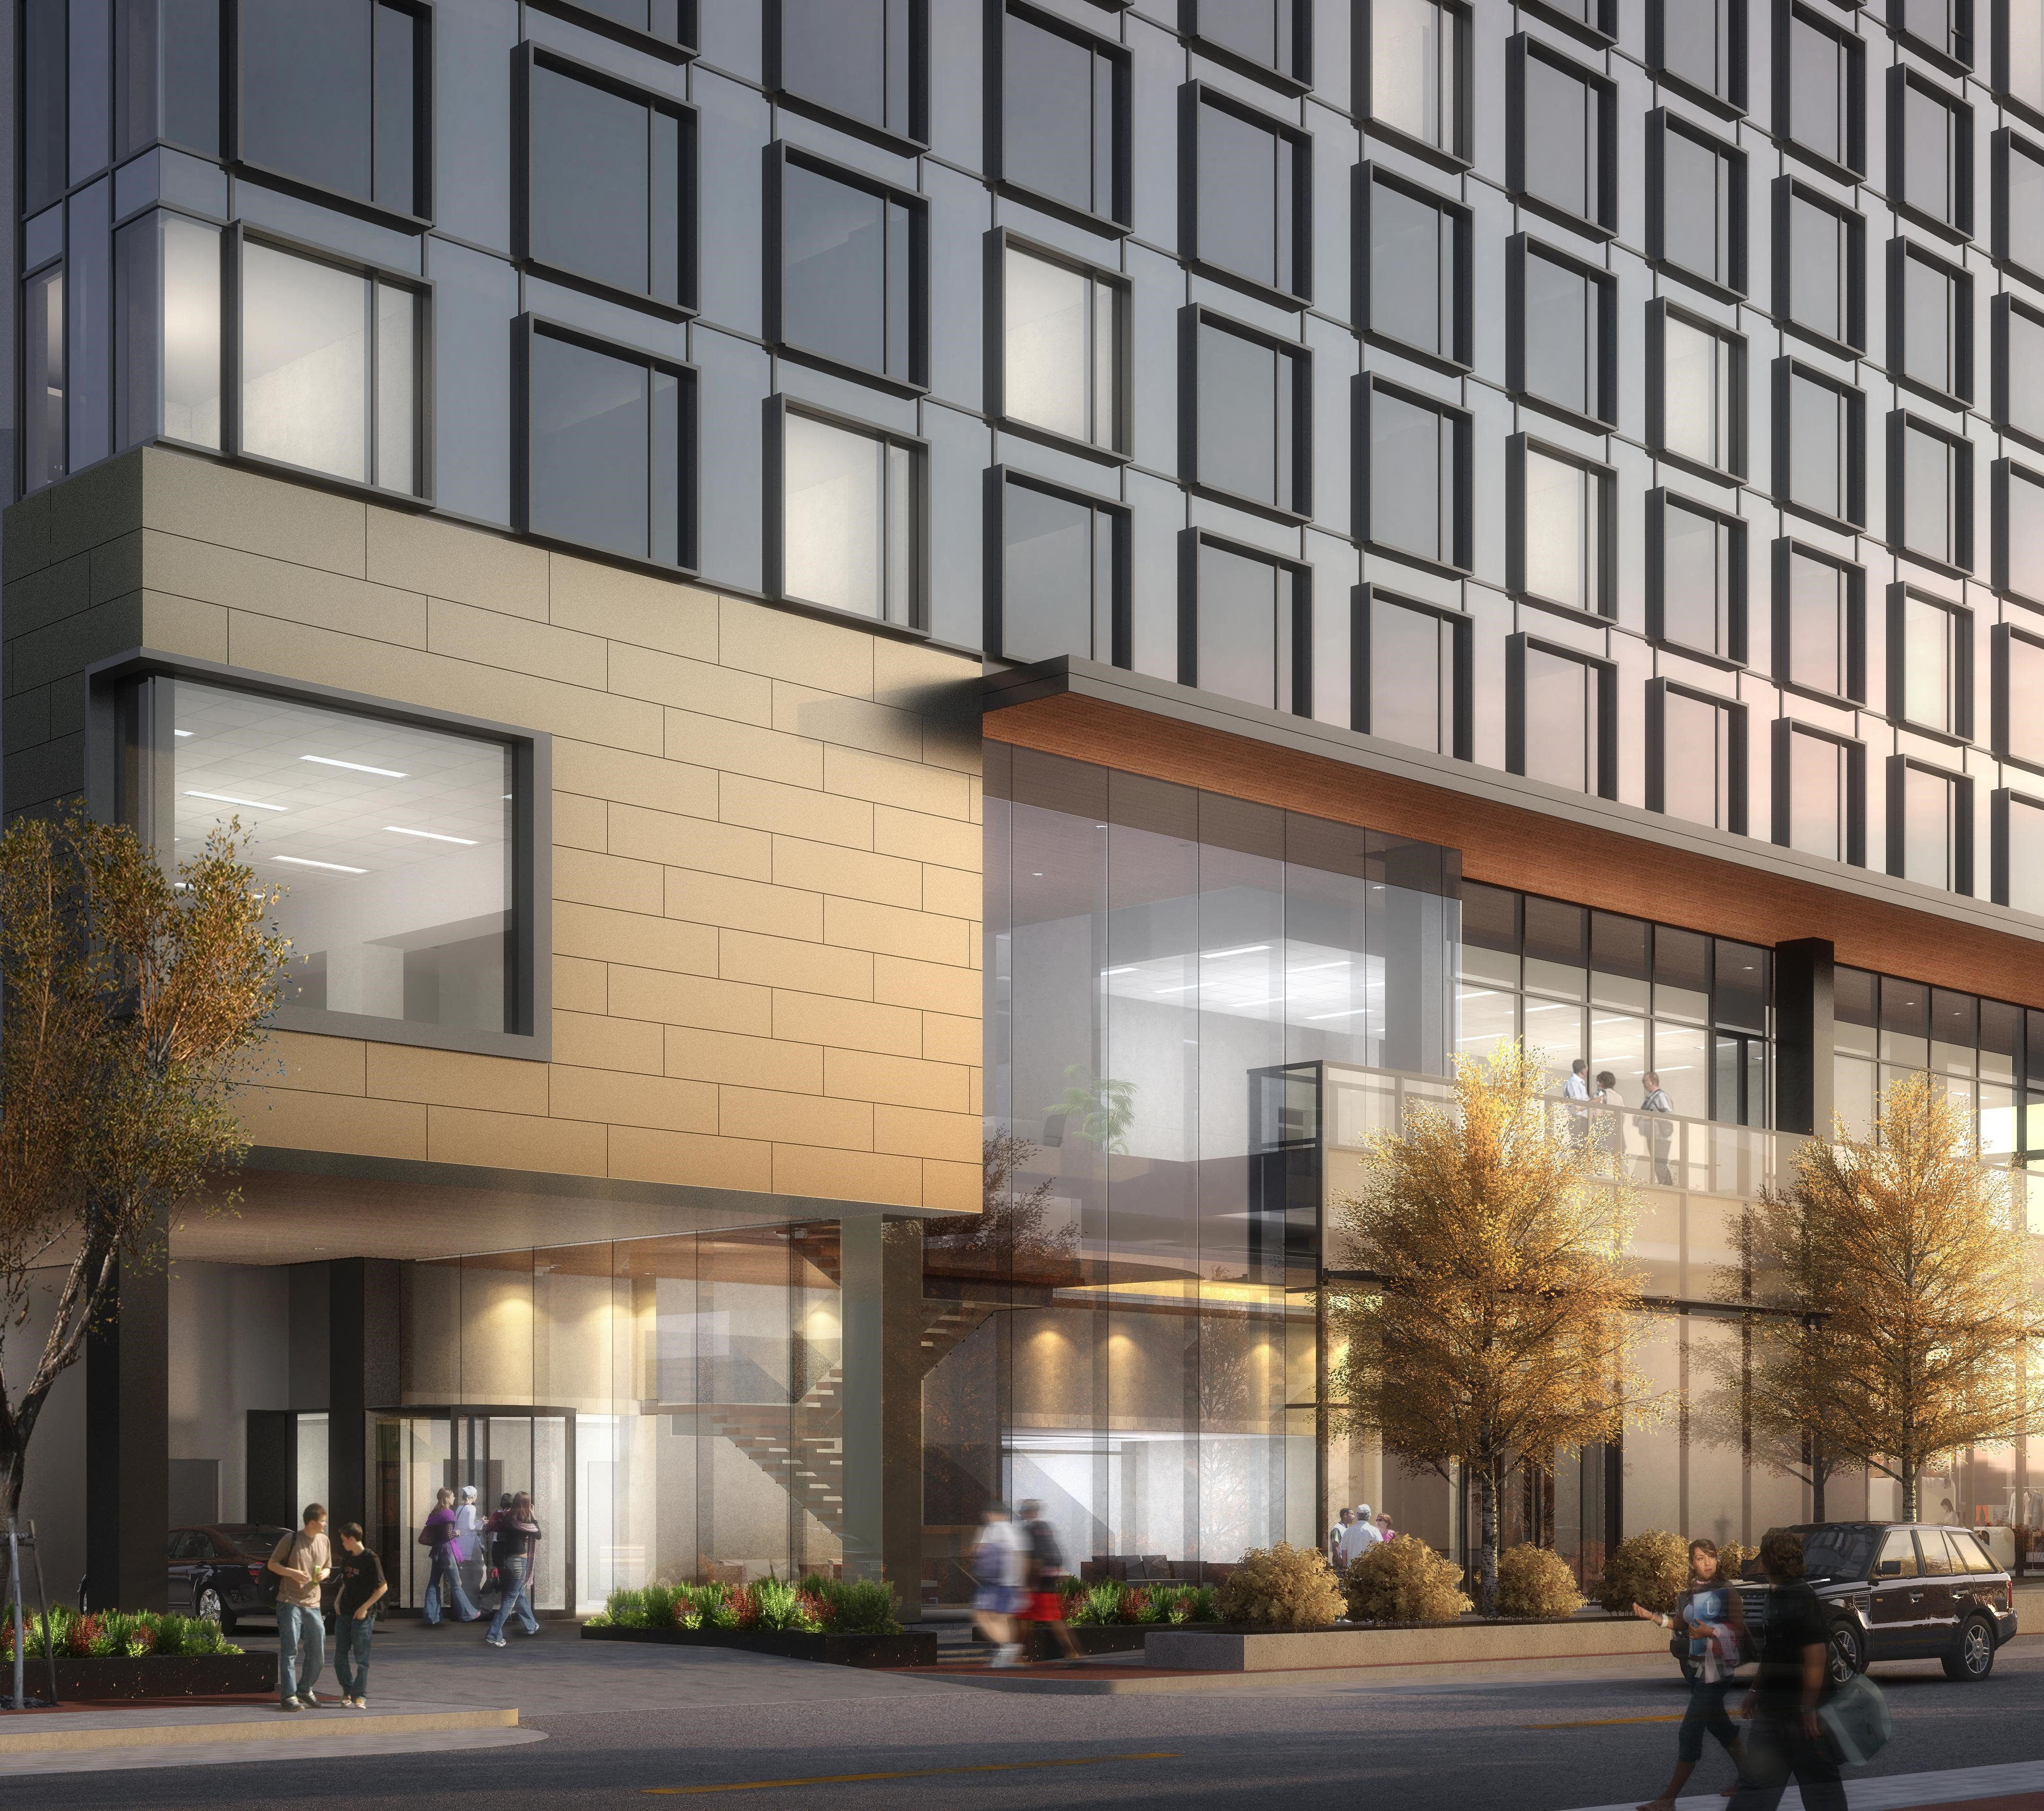 Jacuqard Hotel Cherry Creek Rendering Of Entry At Street Level